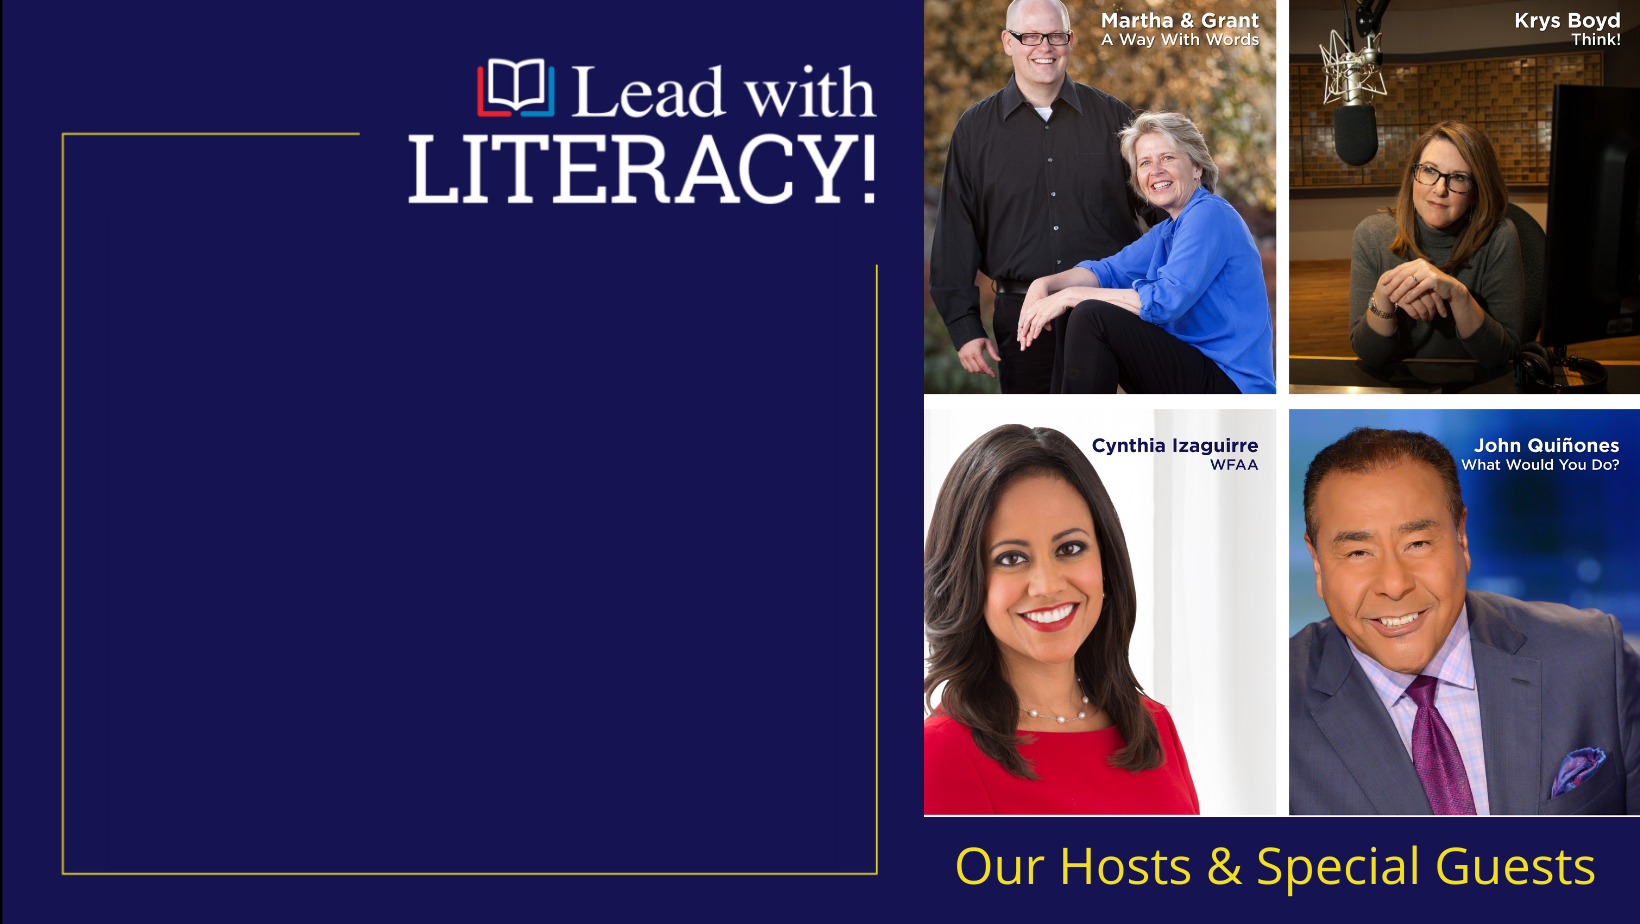 April 22 @ 7PM: Lead With Literacy